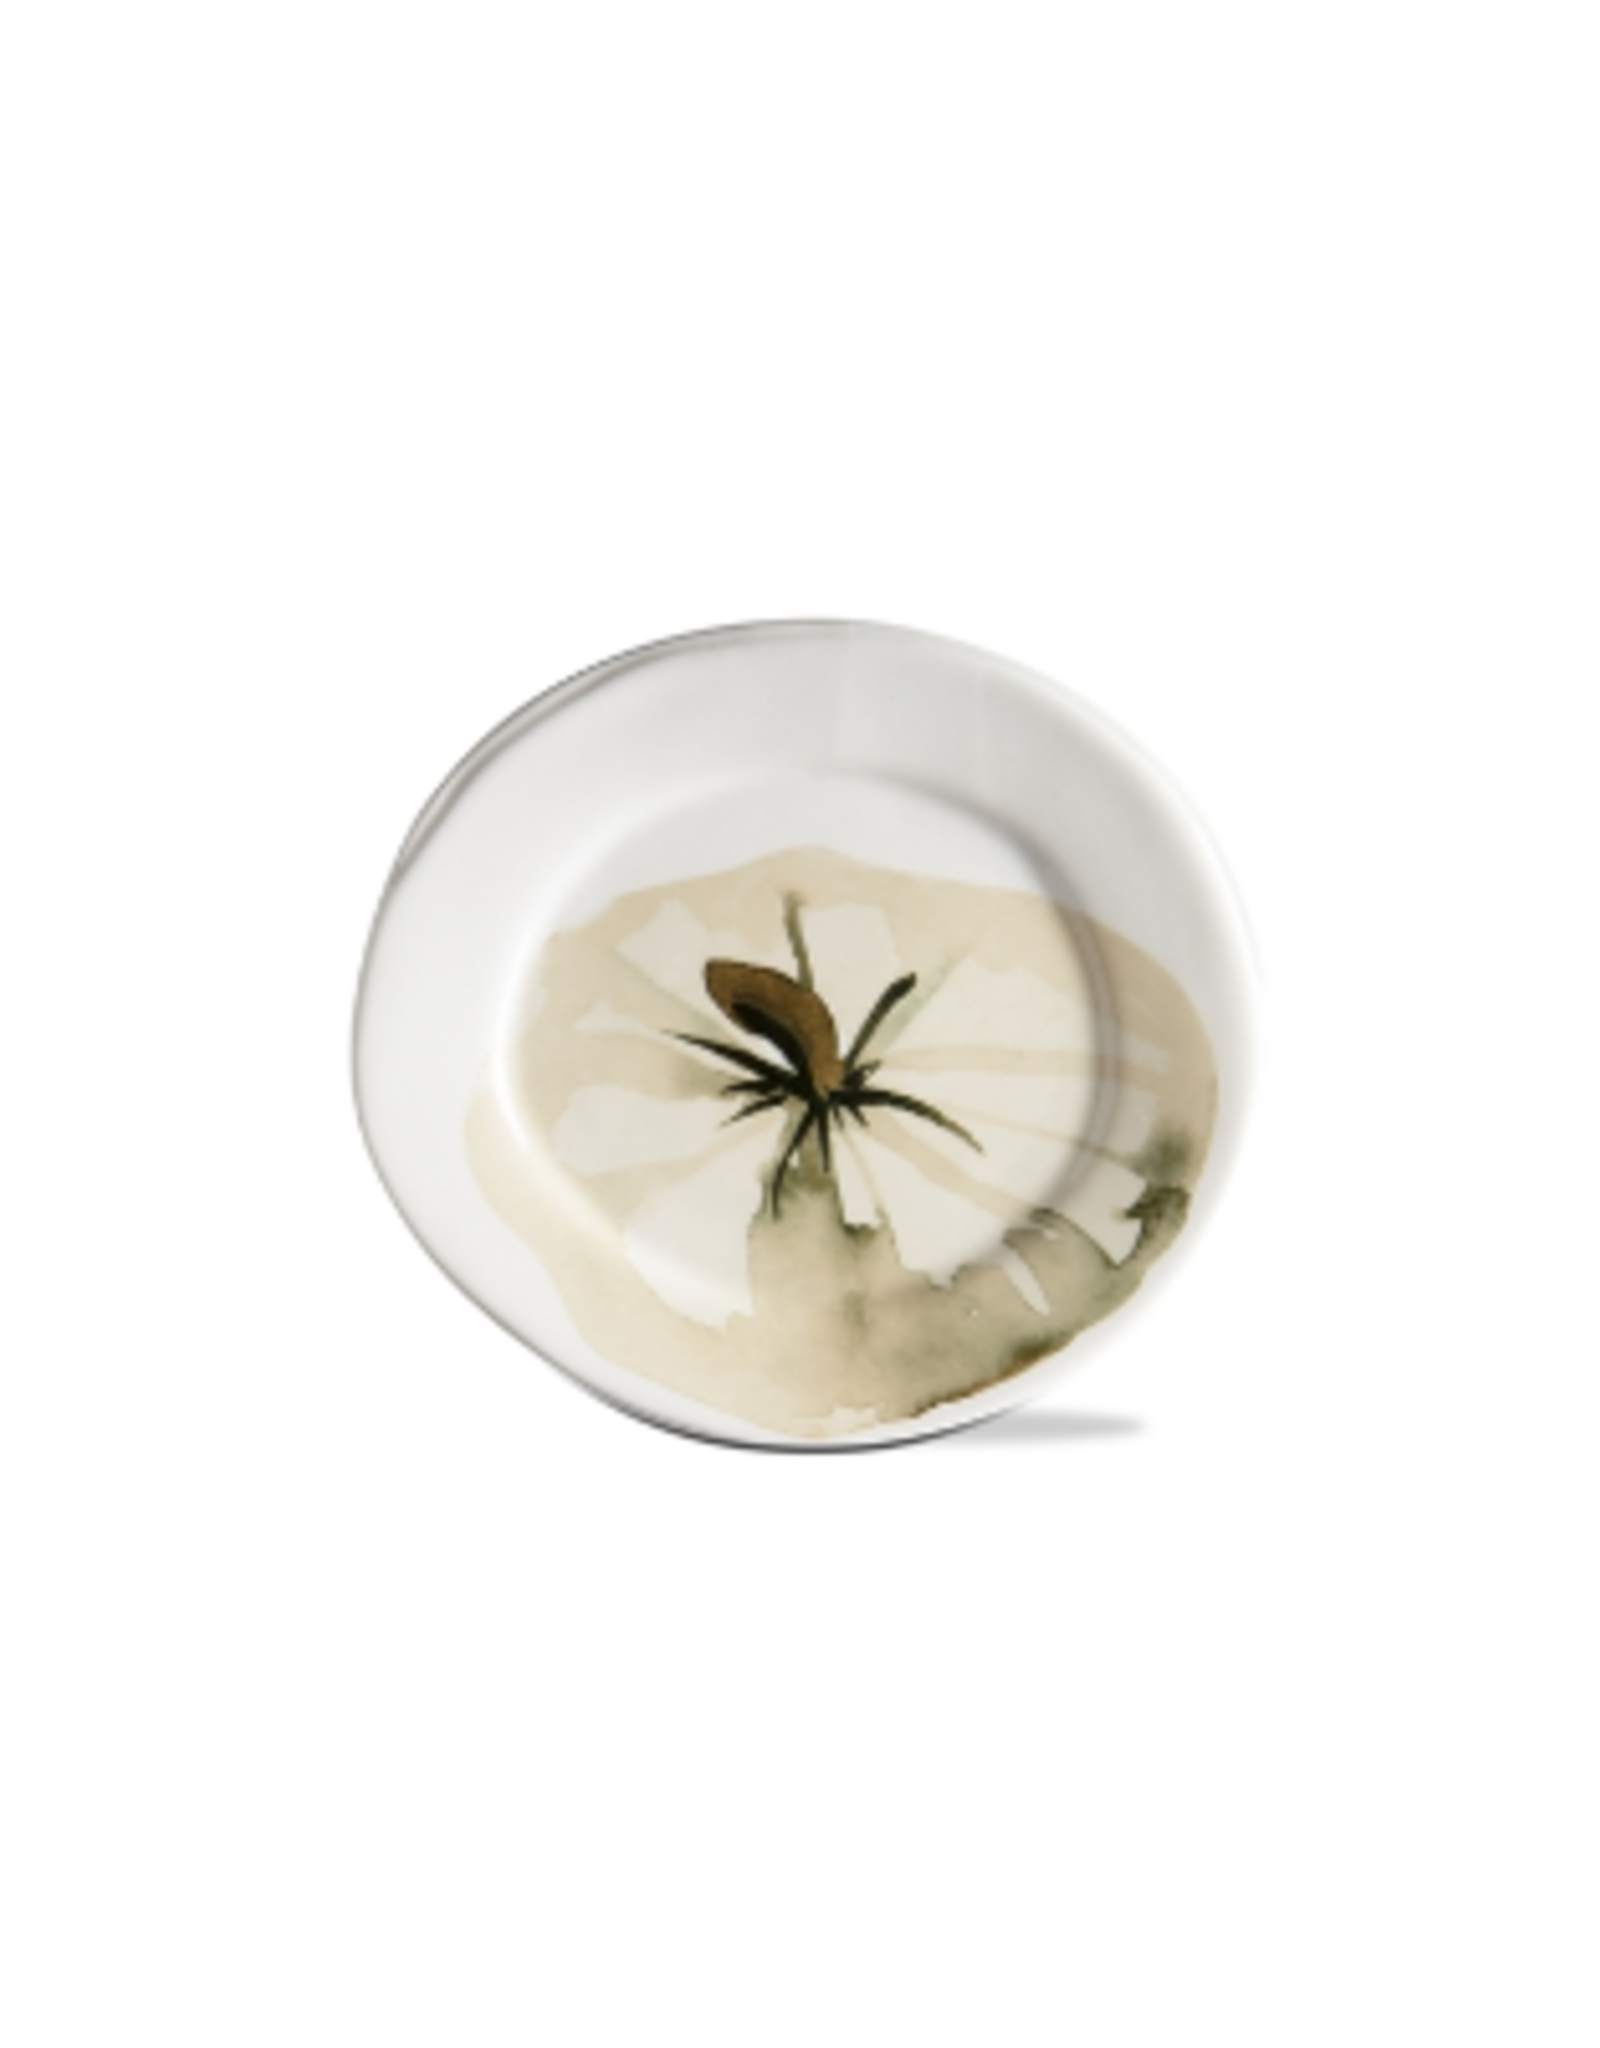 Tag Appetizer Plate, White Pumpkin